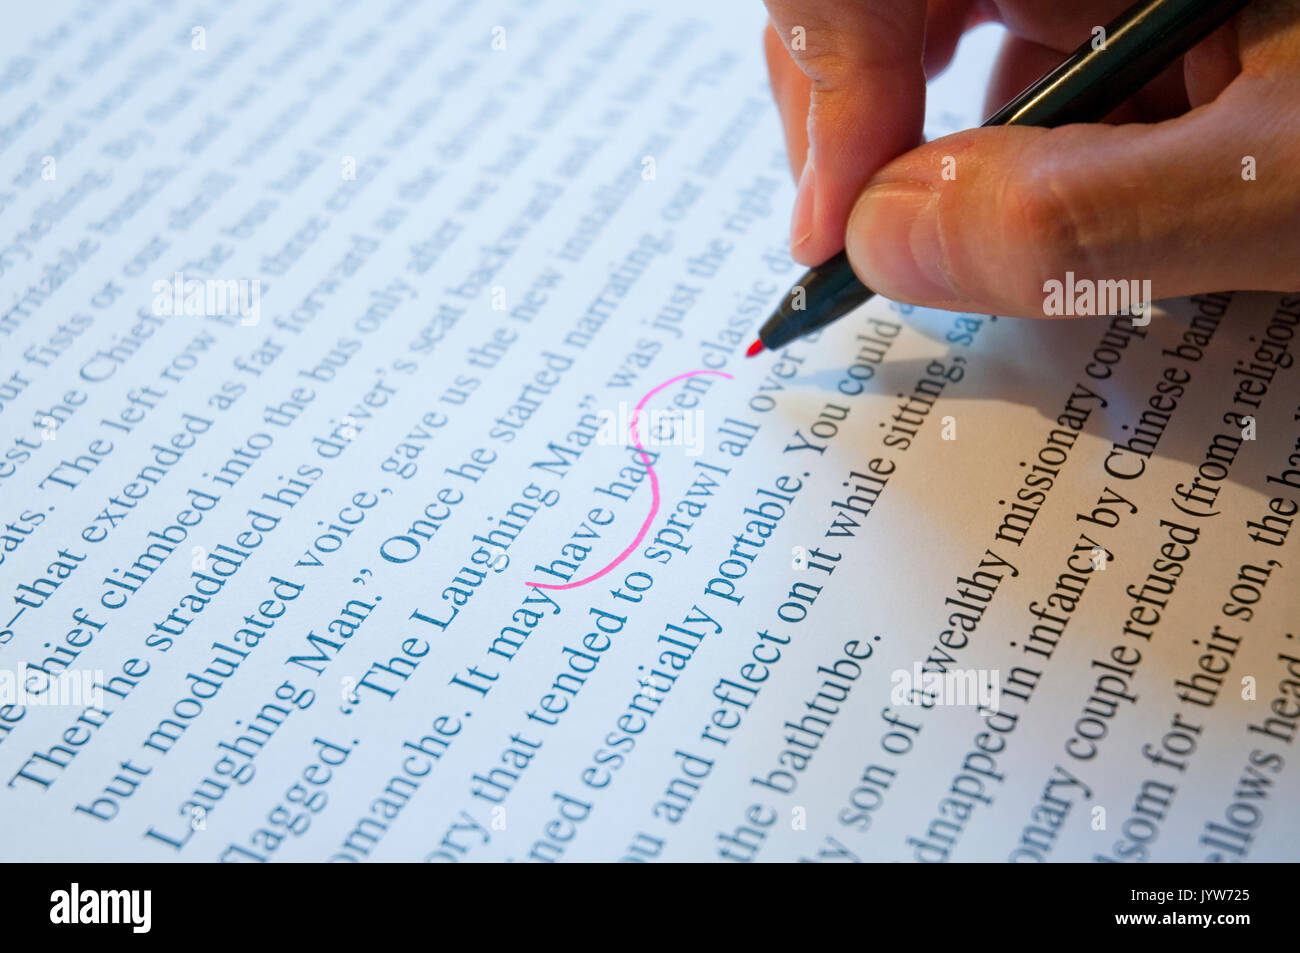 Text correction. Close view. - Stock Image